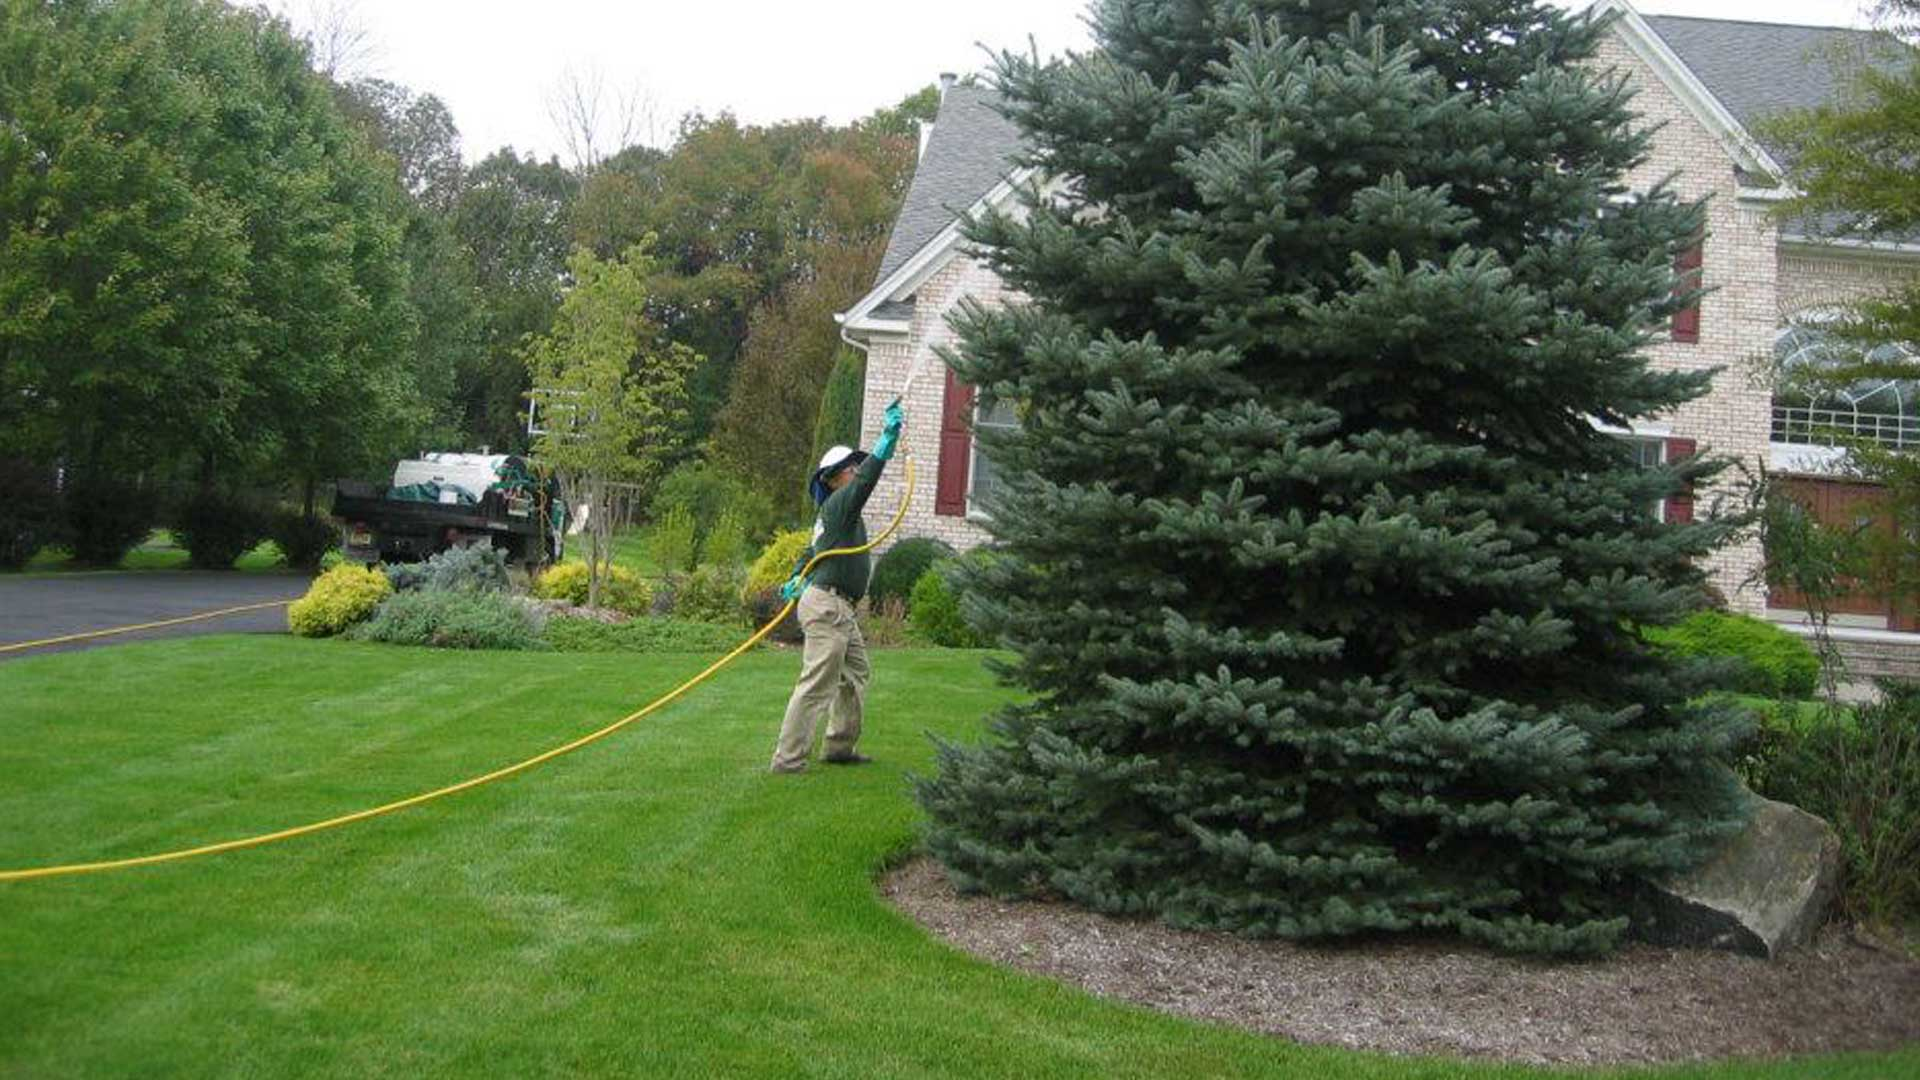 The Lawn Techs employee treating the lawn and trees in Berkeley Heights, NJ.